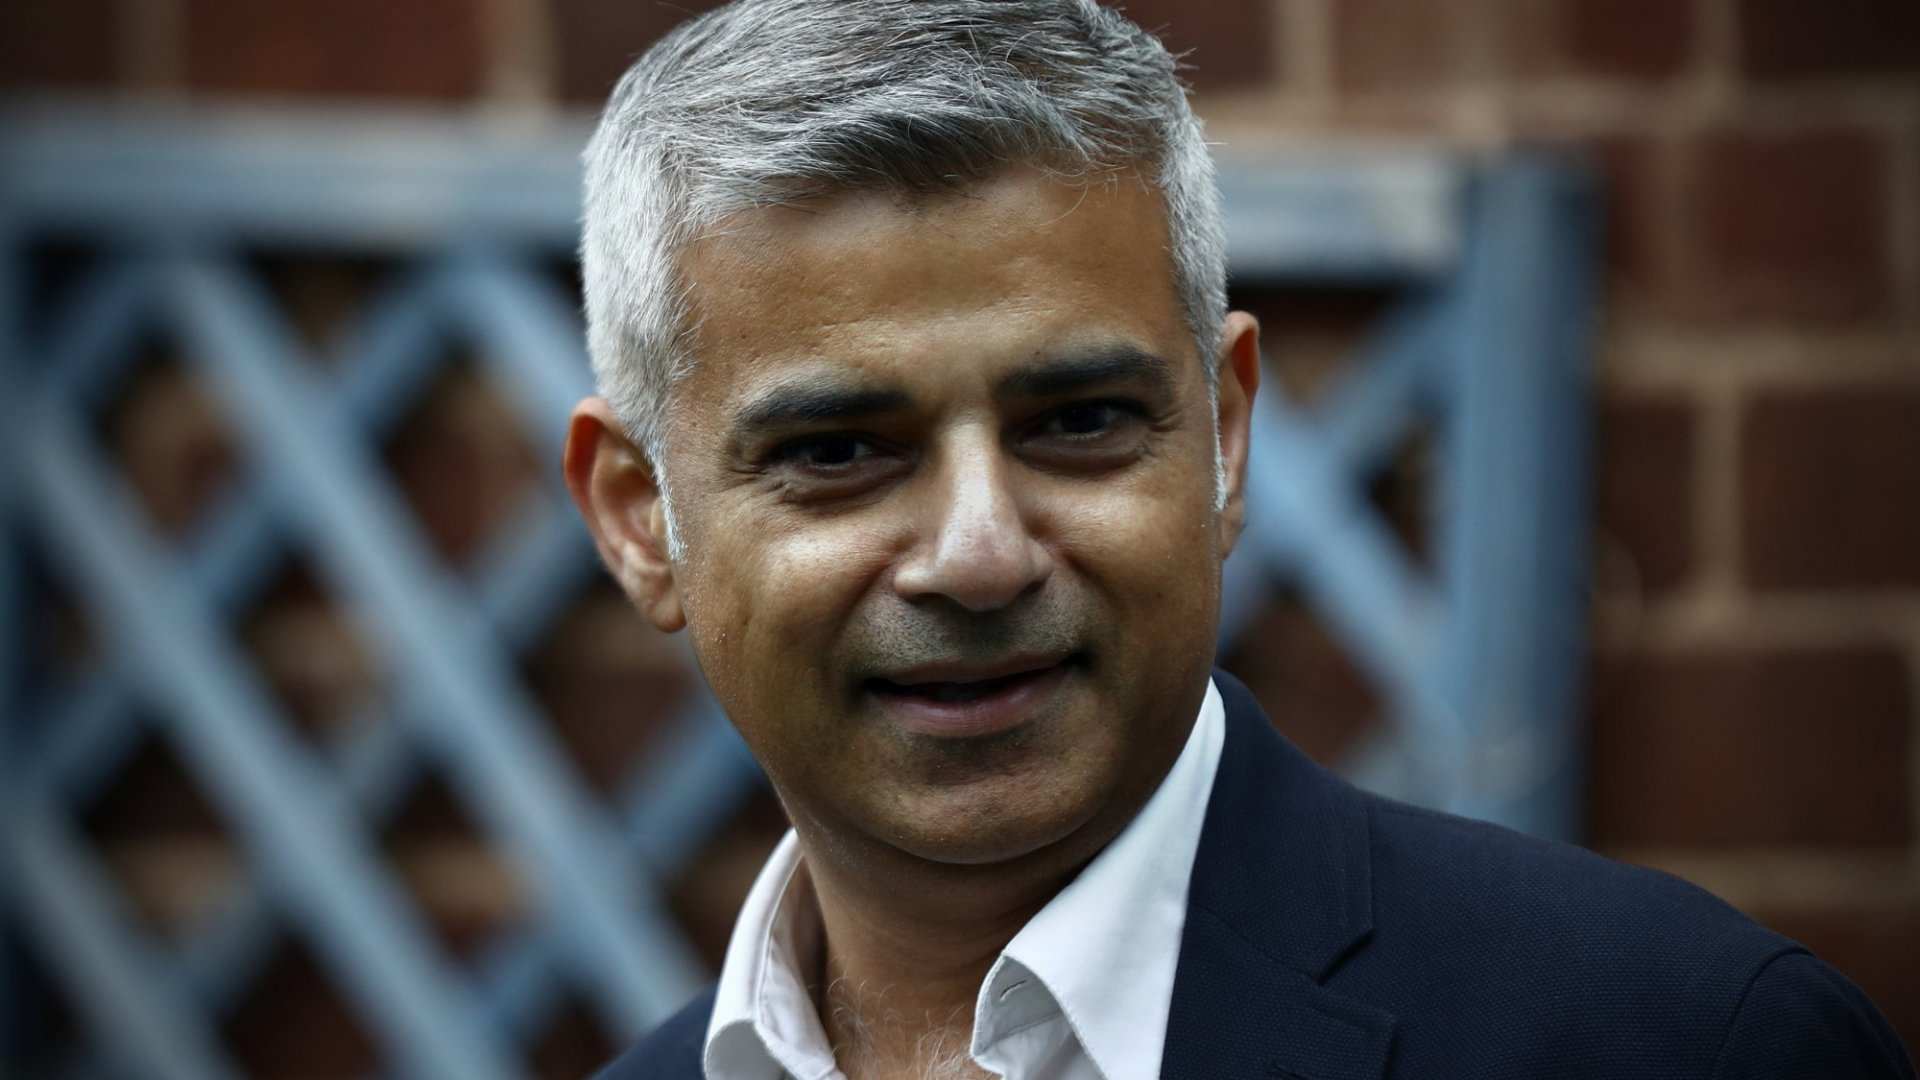 Amid Brexit, London Mayor Insists the City Is 'Open' to U.S. Businesses